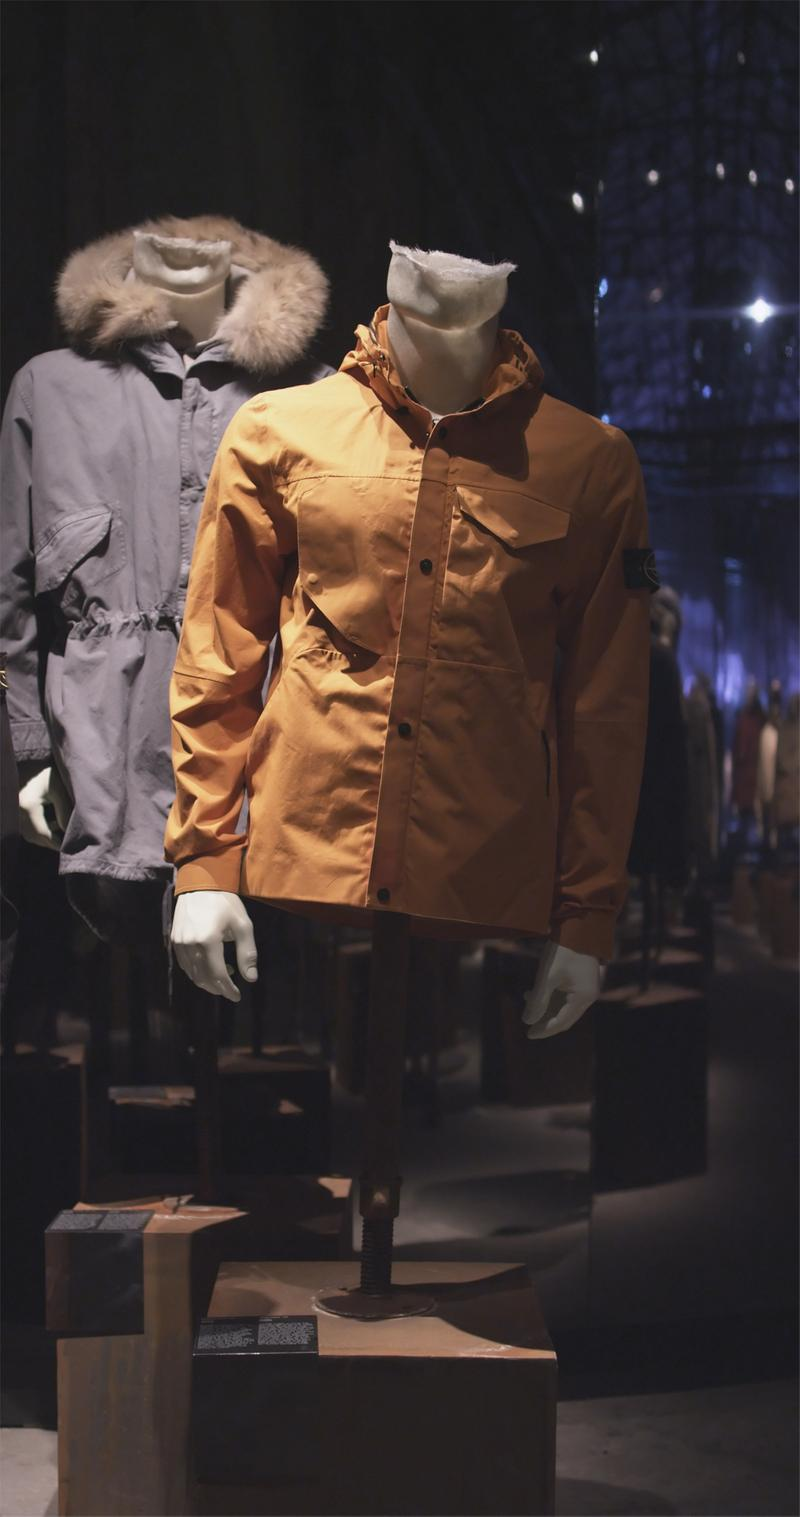 Two jackets, one dark, one orange, displayed on mannequin busts in exhibition hall